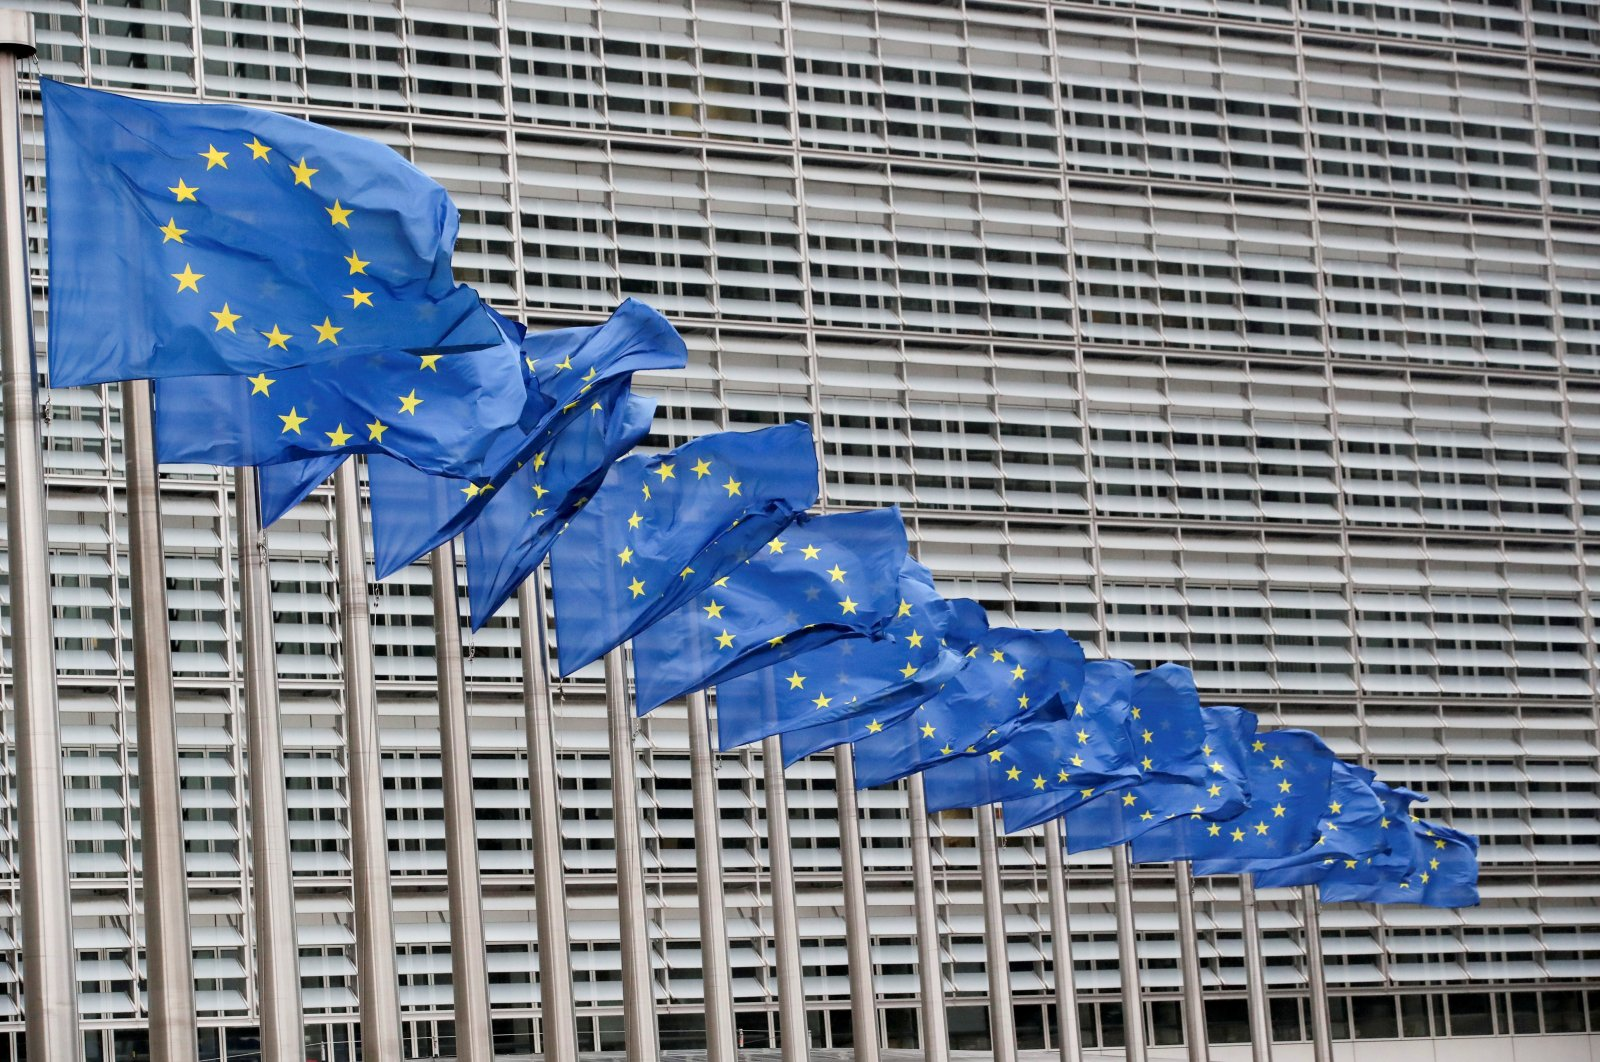 European Union flags flutter outside the EU Commission headquarters in Brussels, Belgium, July 14, 2021. (REUTERS Photo)